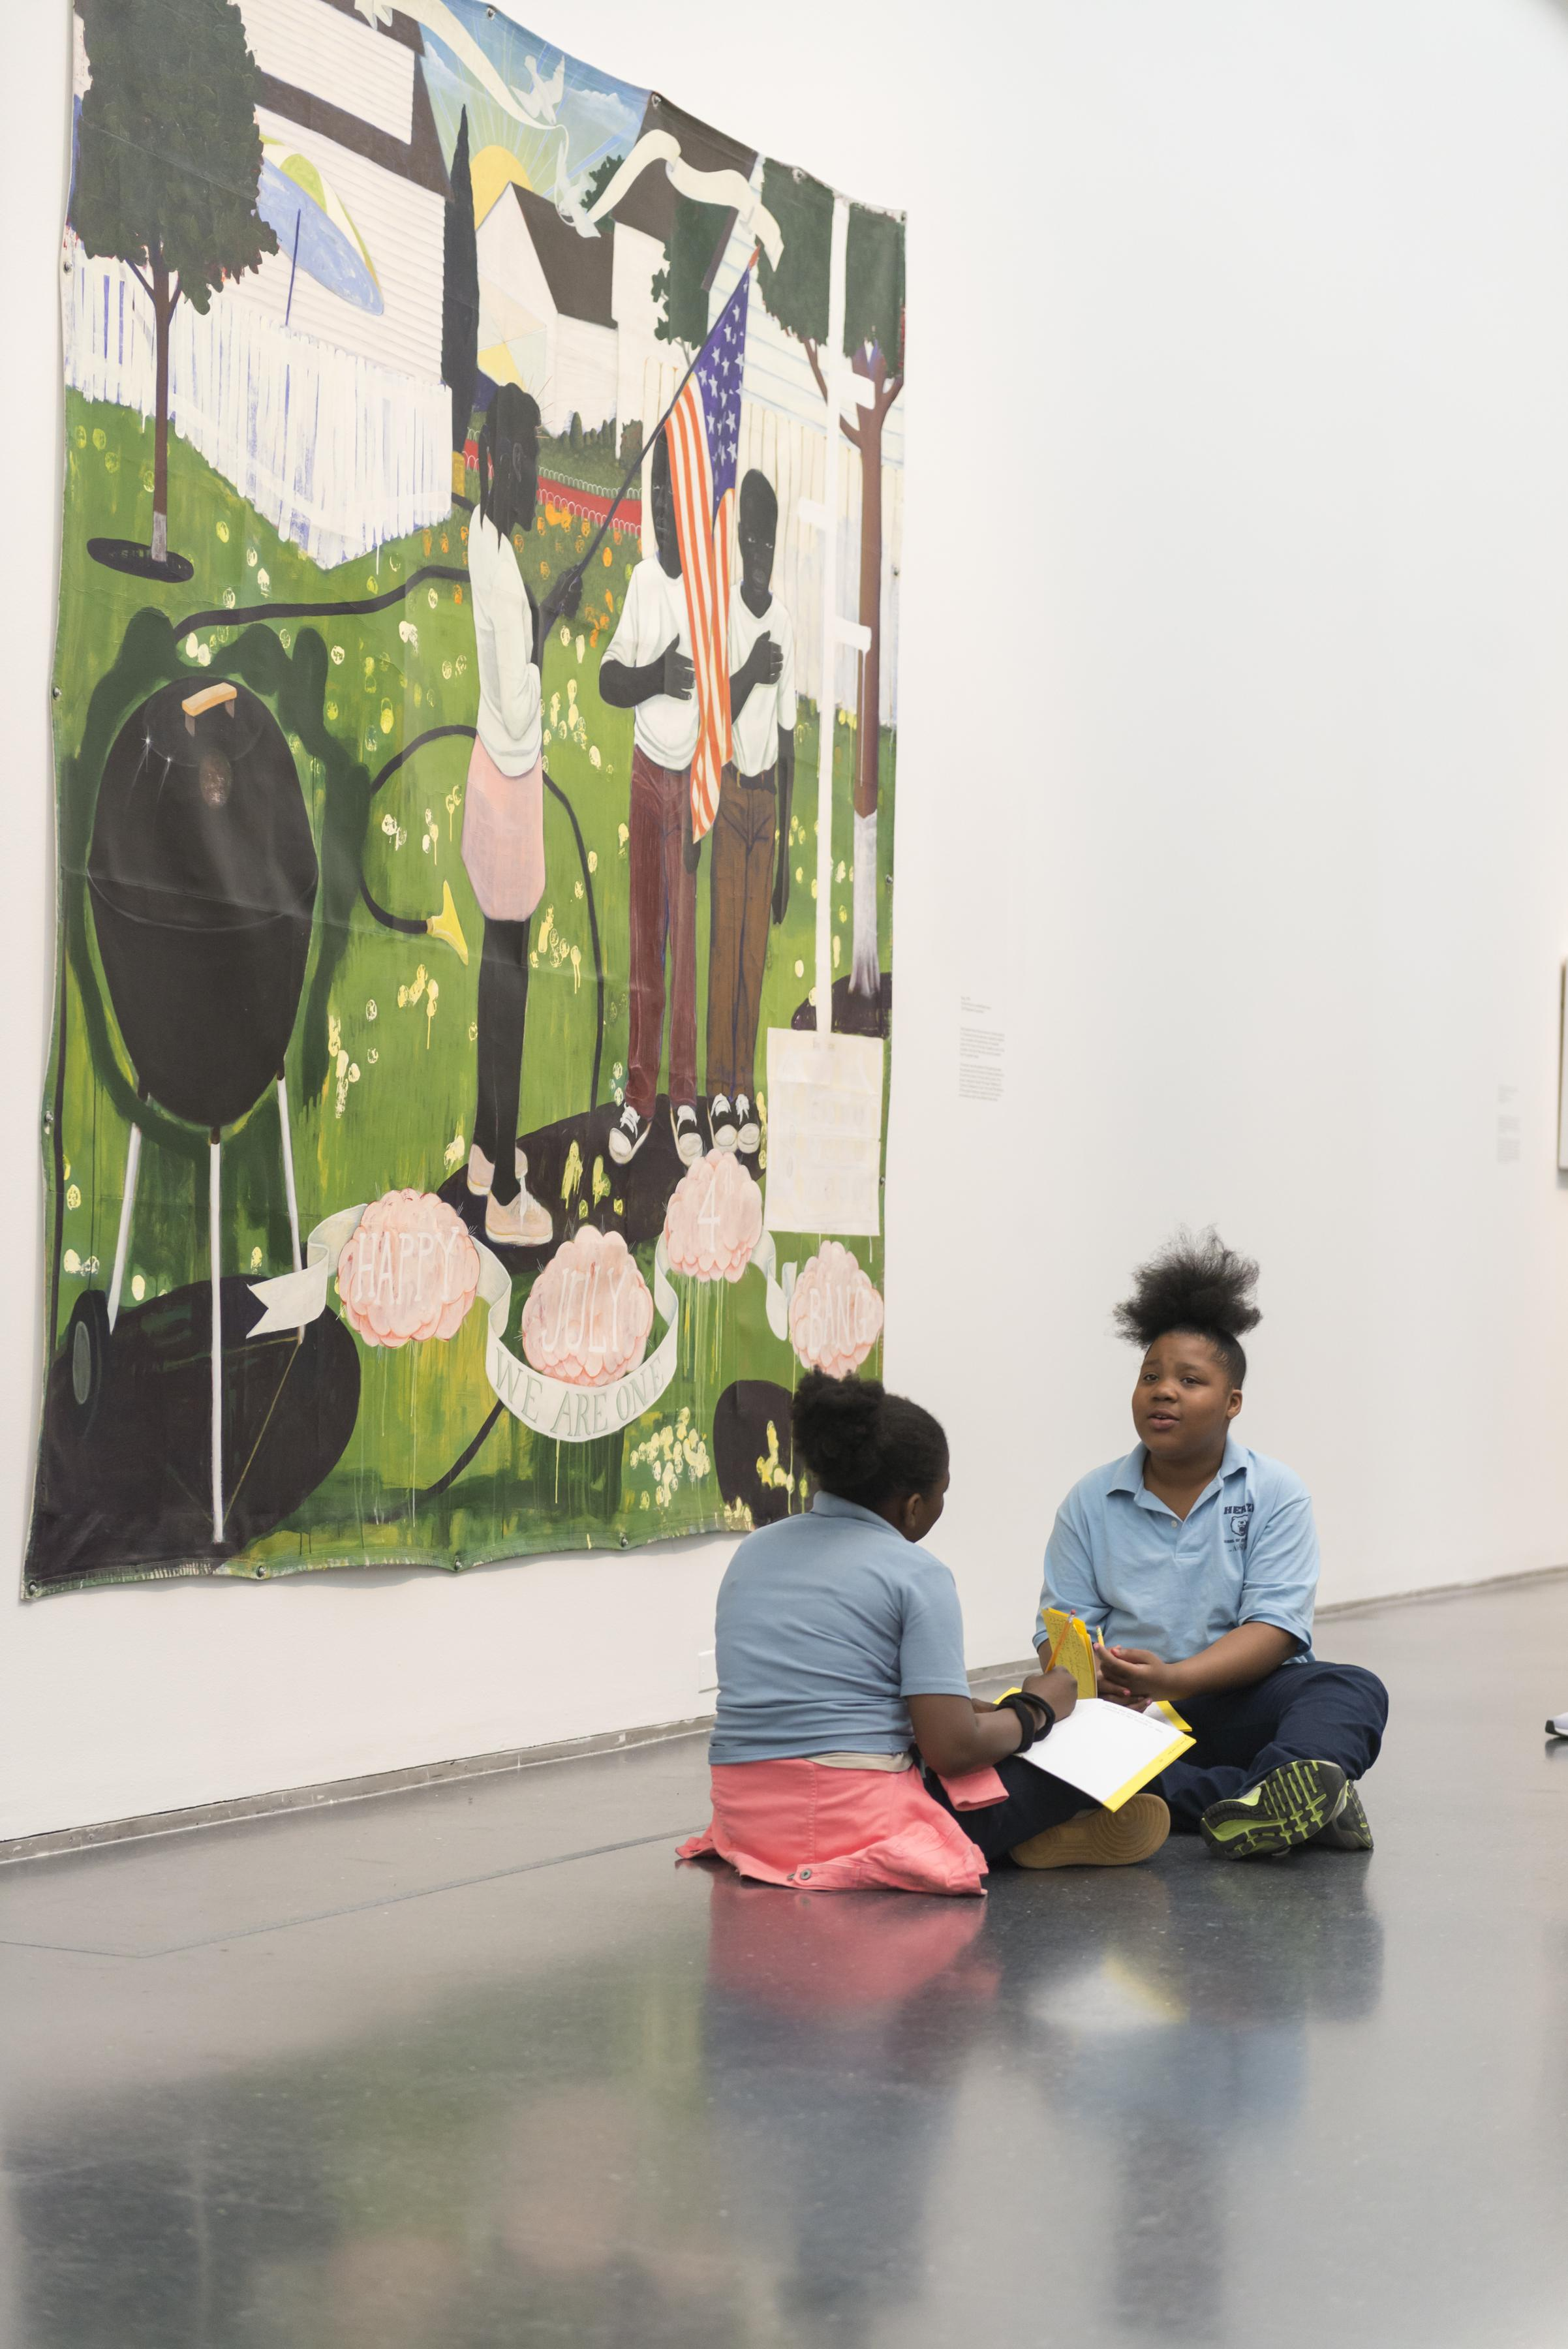 Two young black girls in school uniforms sit on the floor in front of a large painting while talking and writing in an activity book.